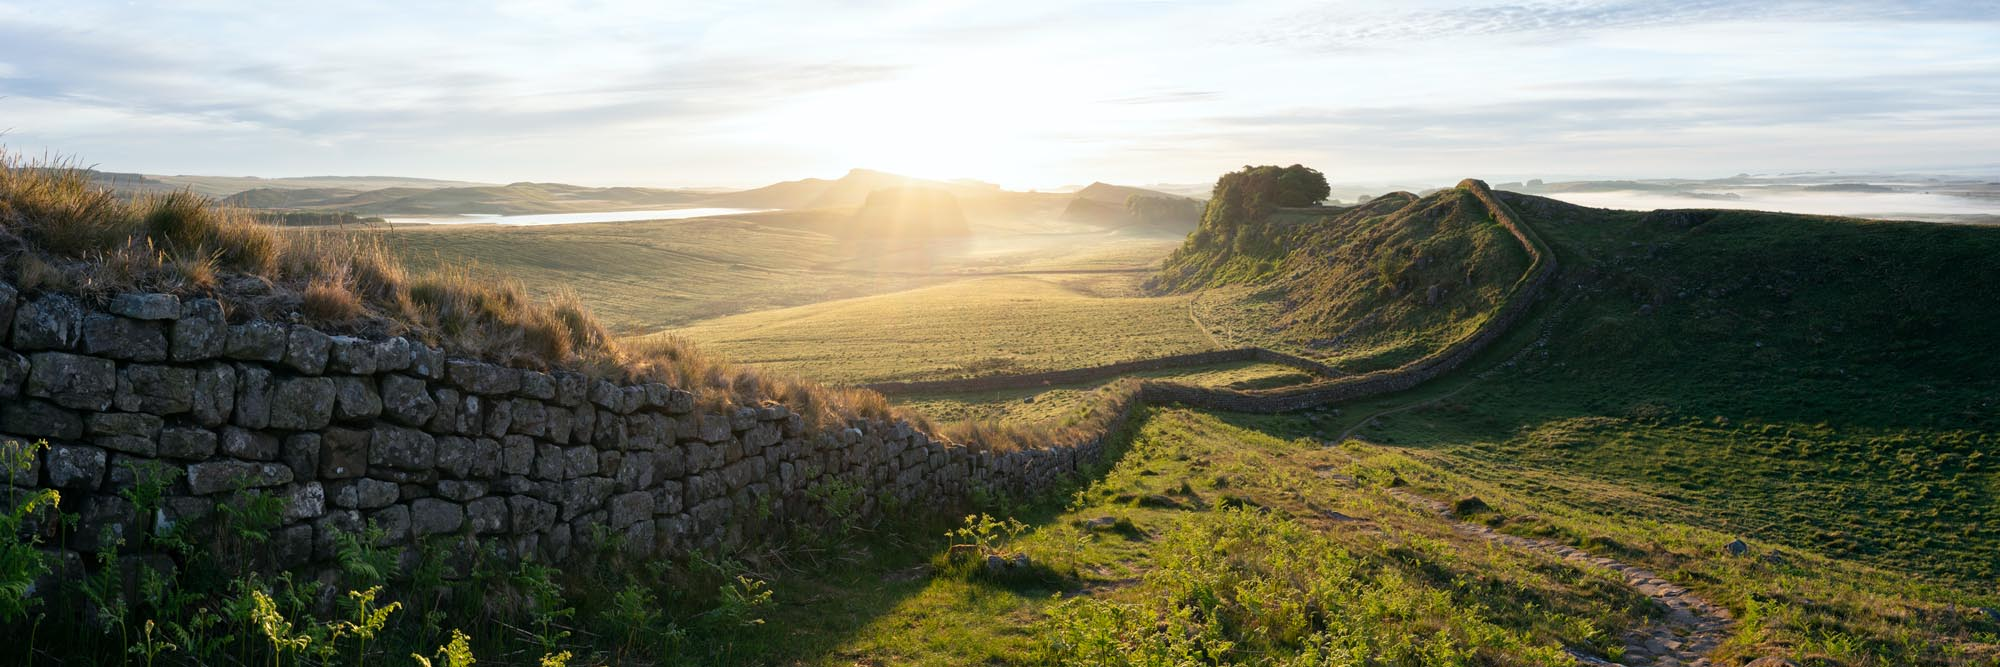 a panoramic print of an old roman wall in England